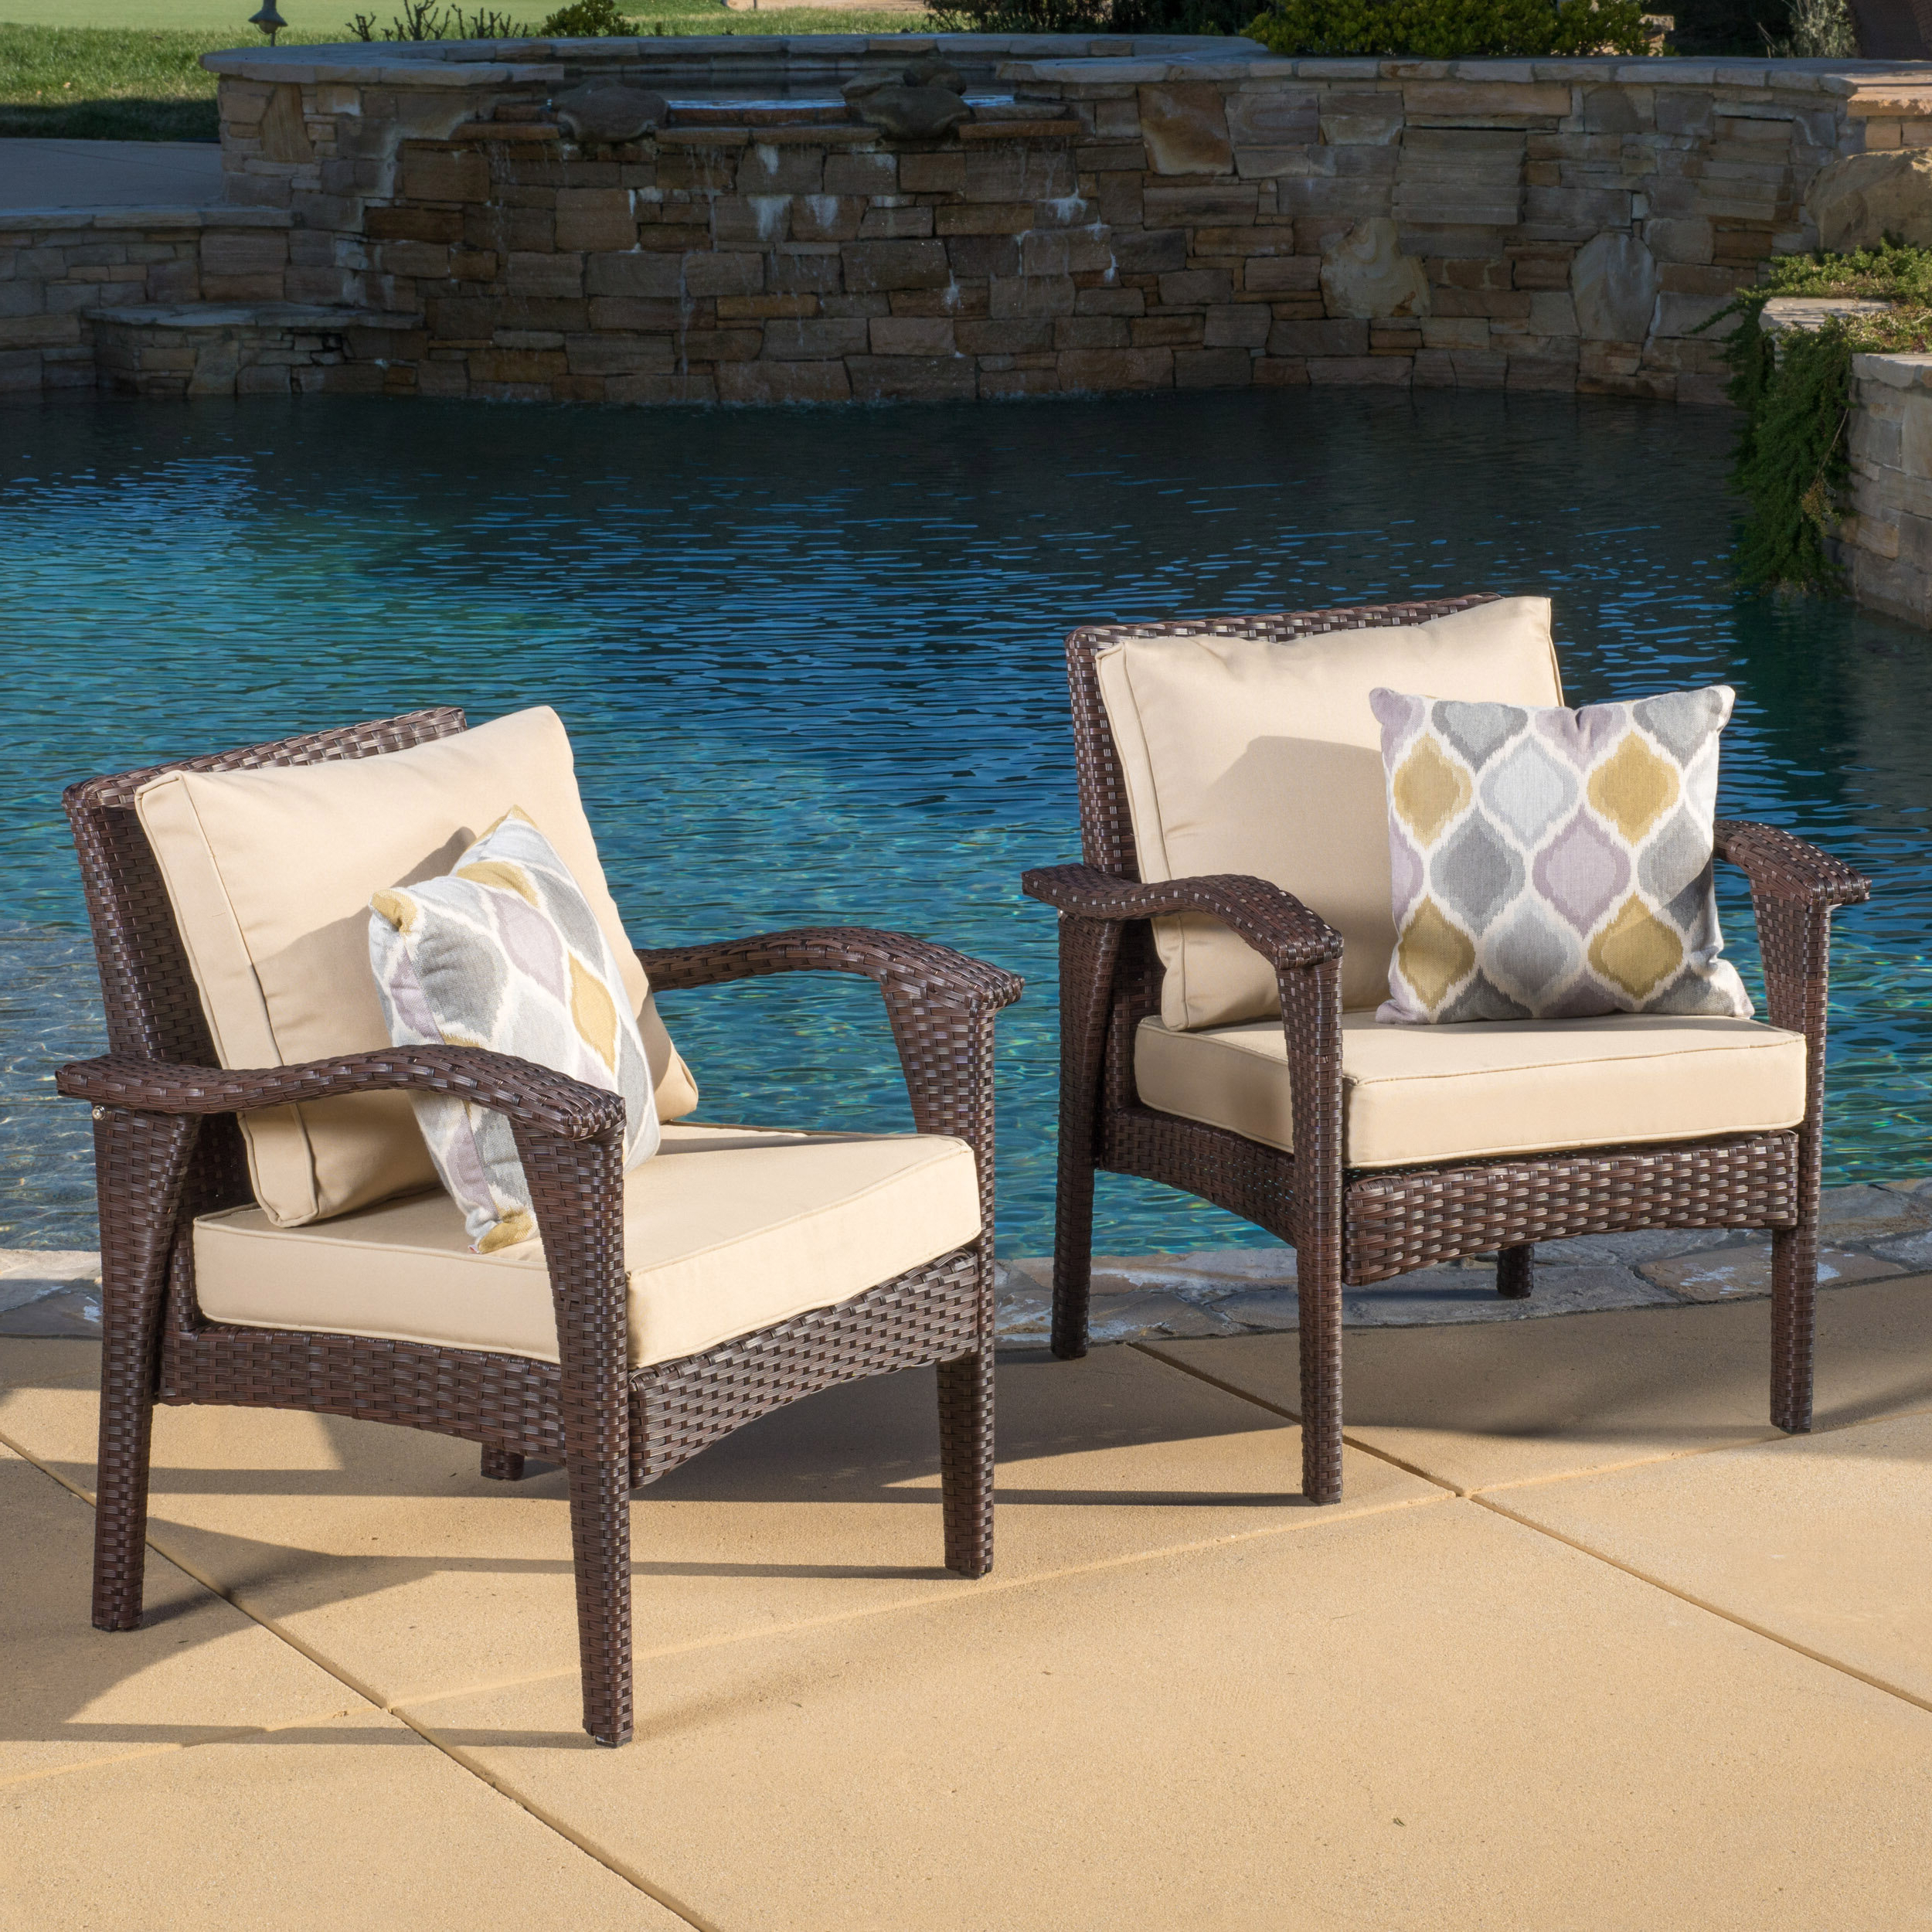 Widely Used Sol 72 Outdoor Hagler Patio Chair With Cushion & Reviews Regarding Hagler Outdoor Loveseats With Cushions (Gallery 13 of 25)